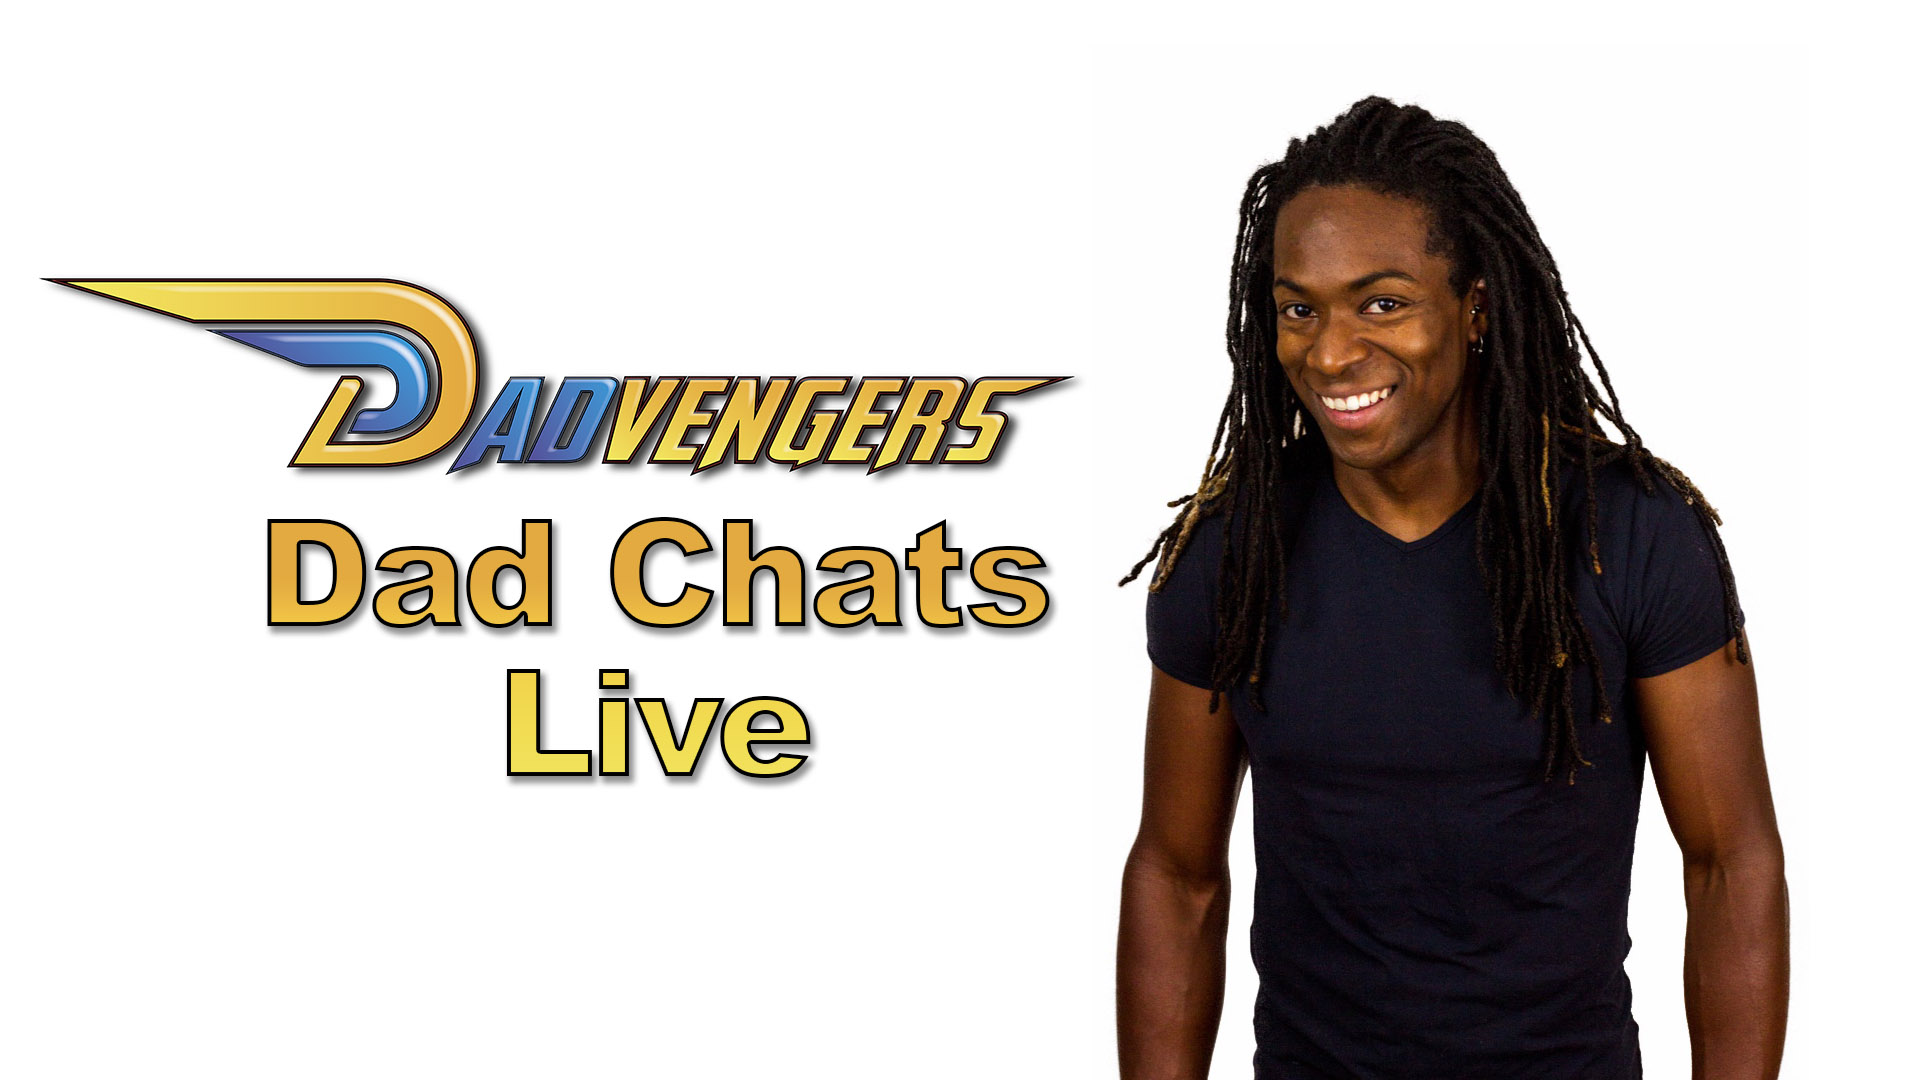 Dadvengers – Dad Chats Live on Instagram